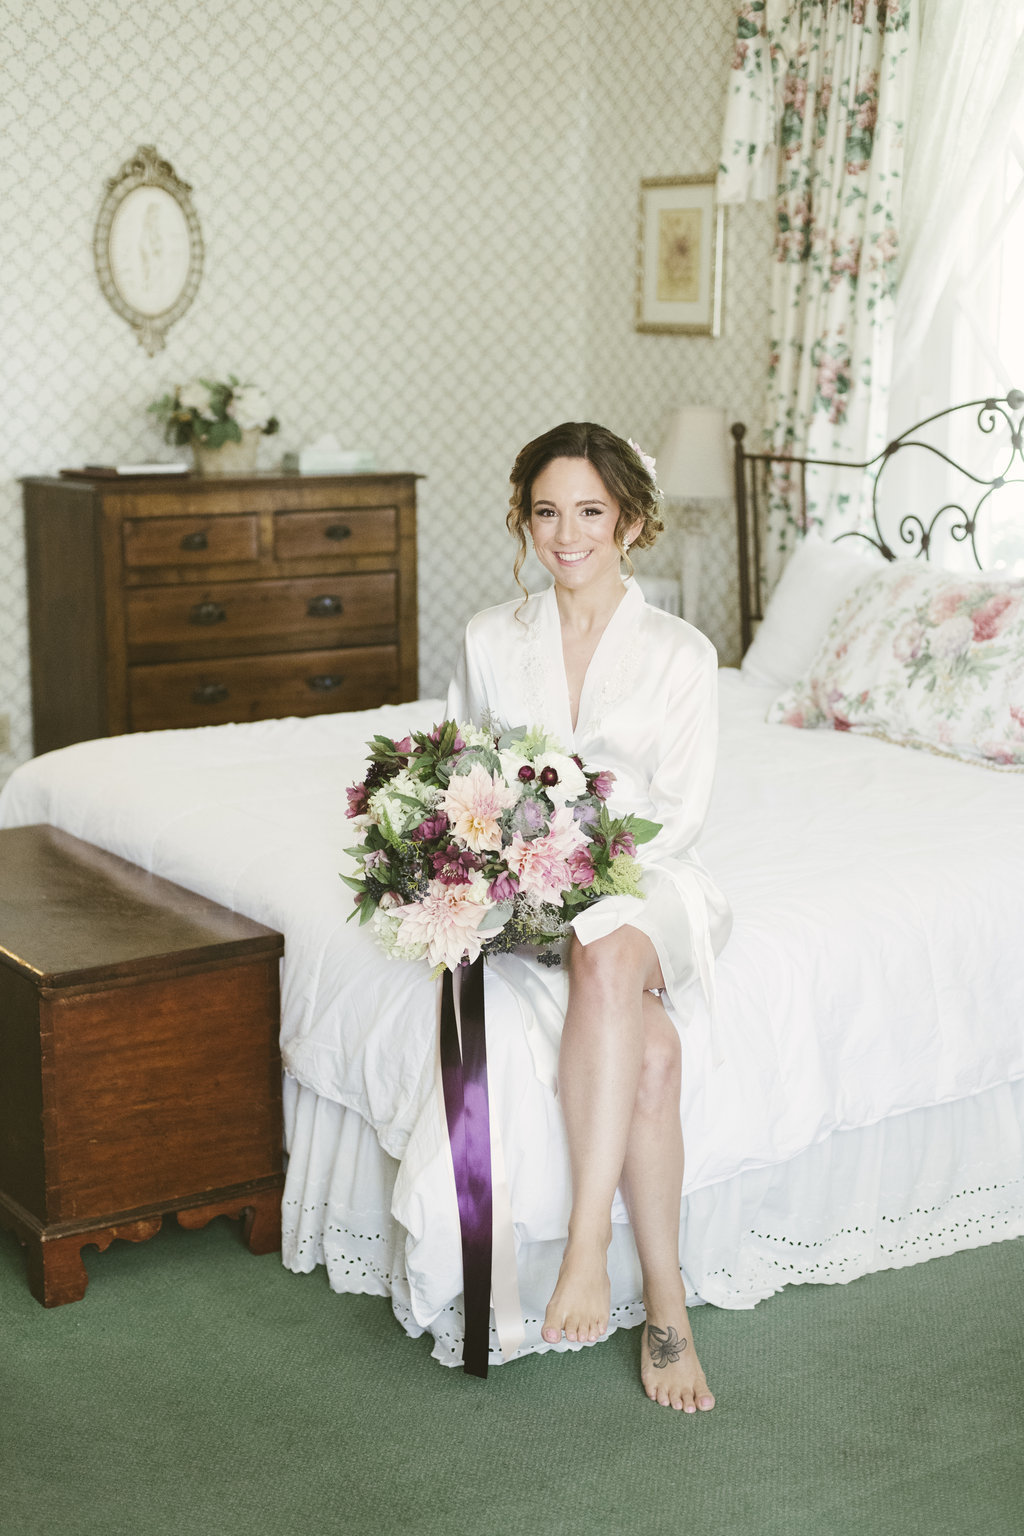 Monica-Relyea-Events-Alicia-King-Photography-Delamater-Inn-Beekman-Arms-Wedding-Rhinebeck-New-York-Hudson-Valley32